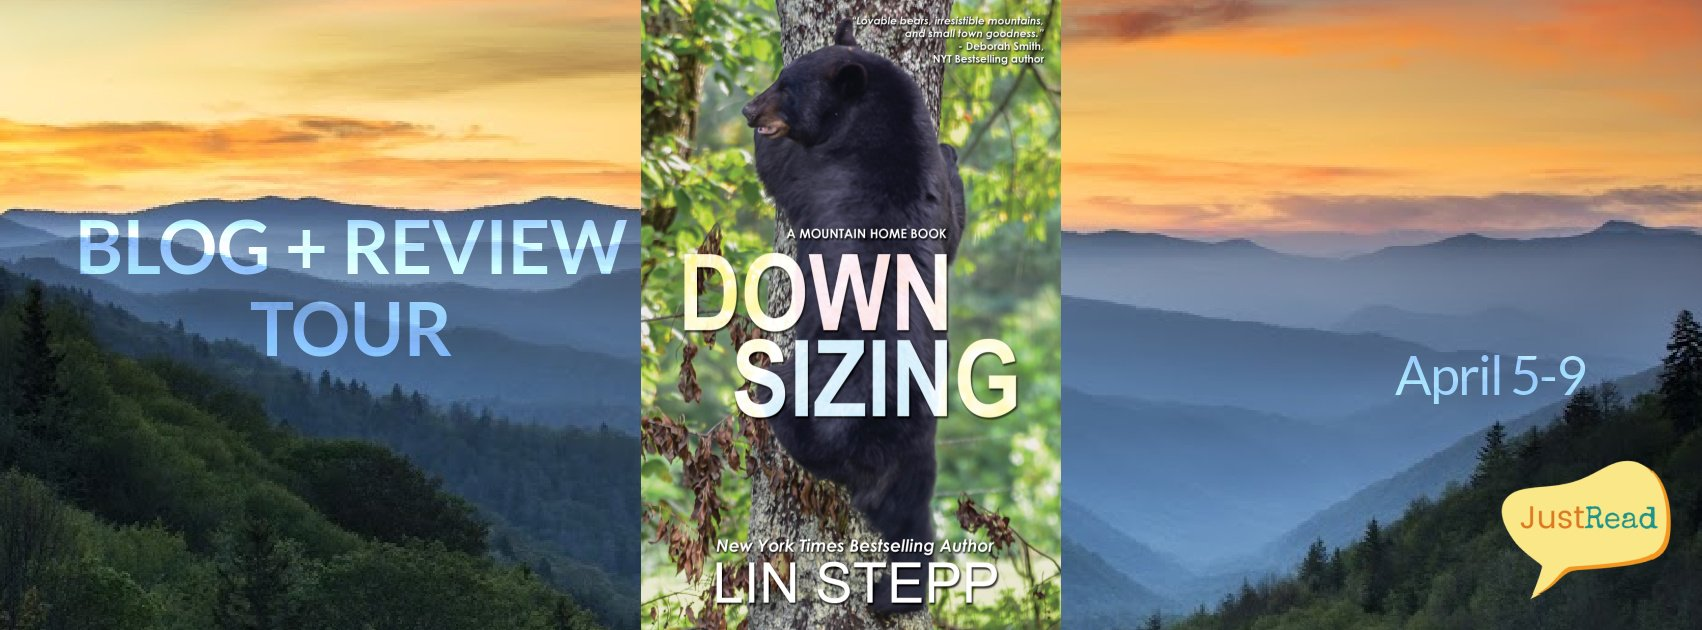 Downsizing JustRead Blog + Review Tour